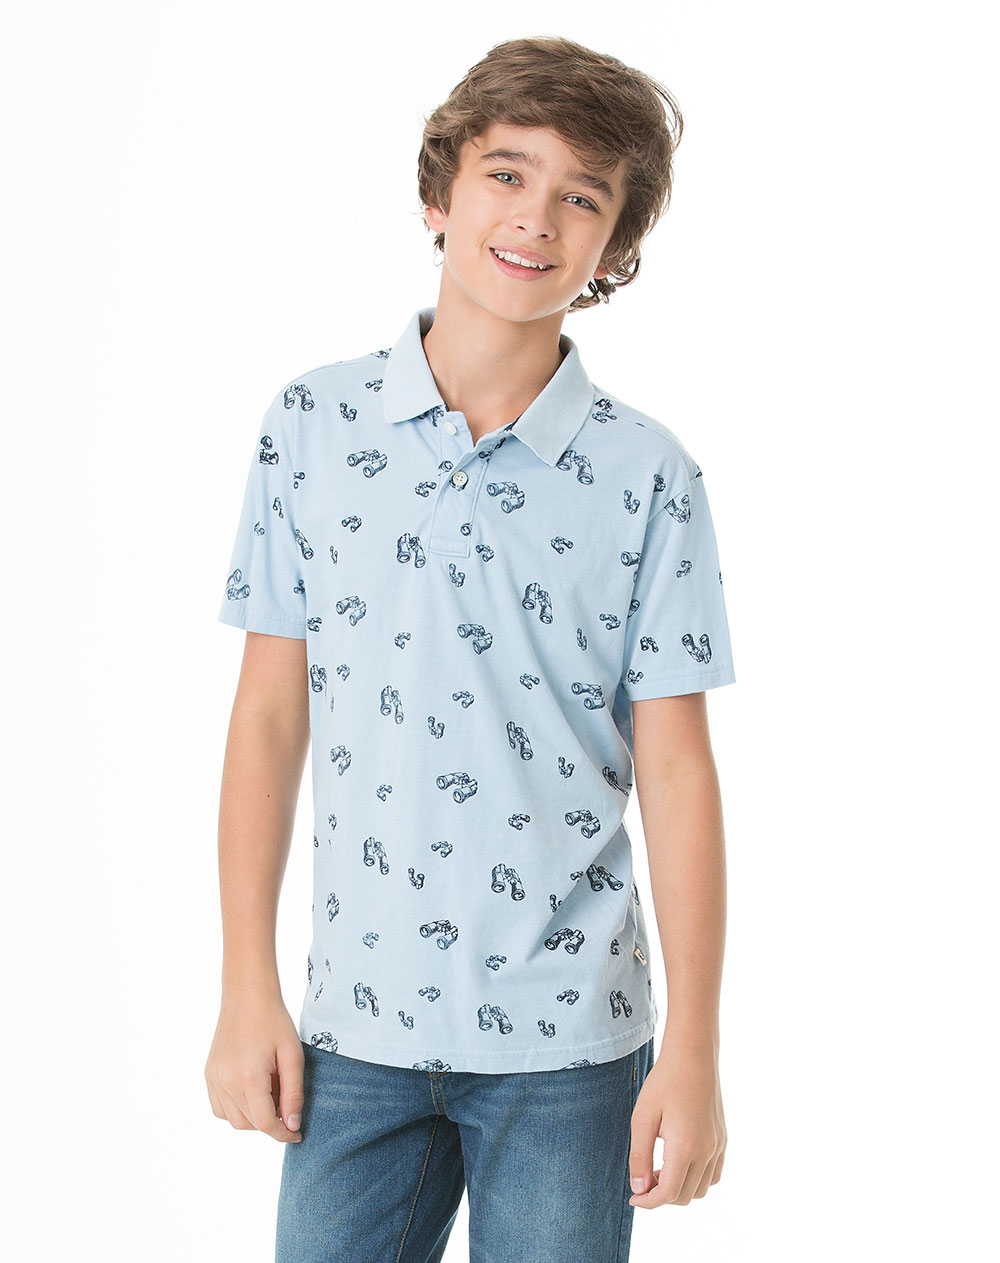 Camisa Polo Juvenil Masculina Fileas